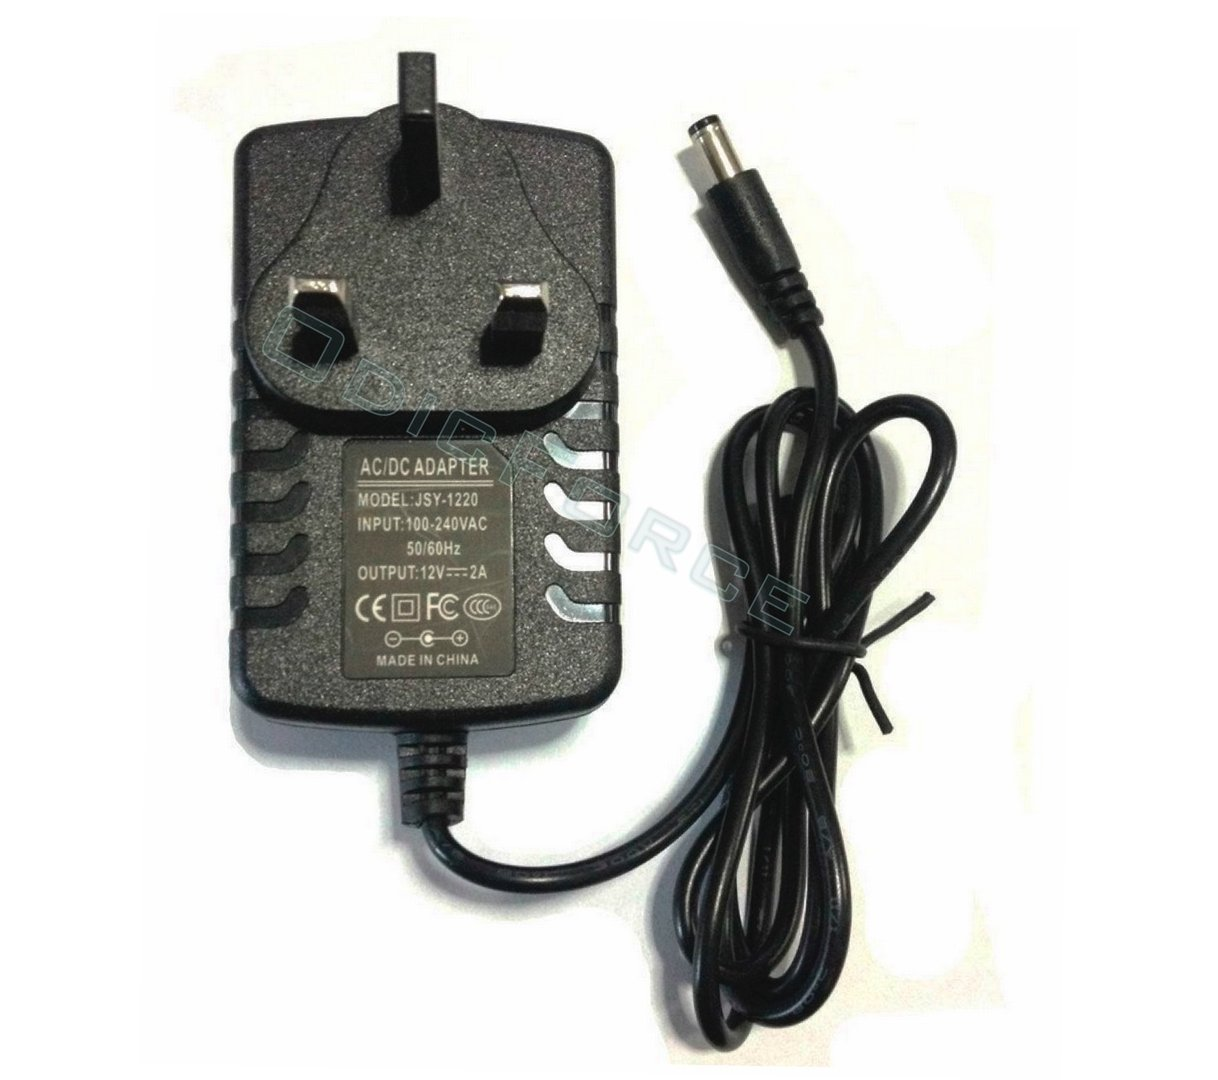 UK DC 12V 2A Power Supply Adapter 100-240V Input,  5.5mm x 2.1mm Connector